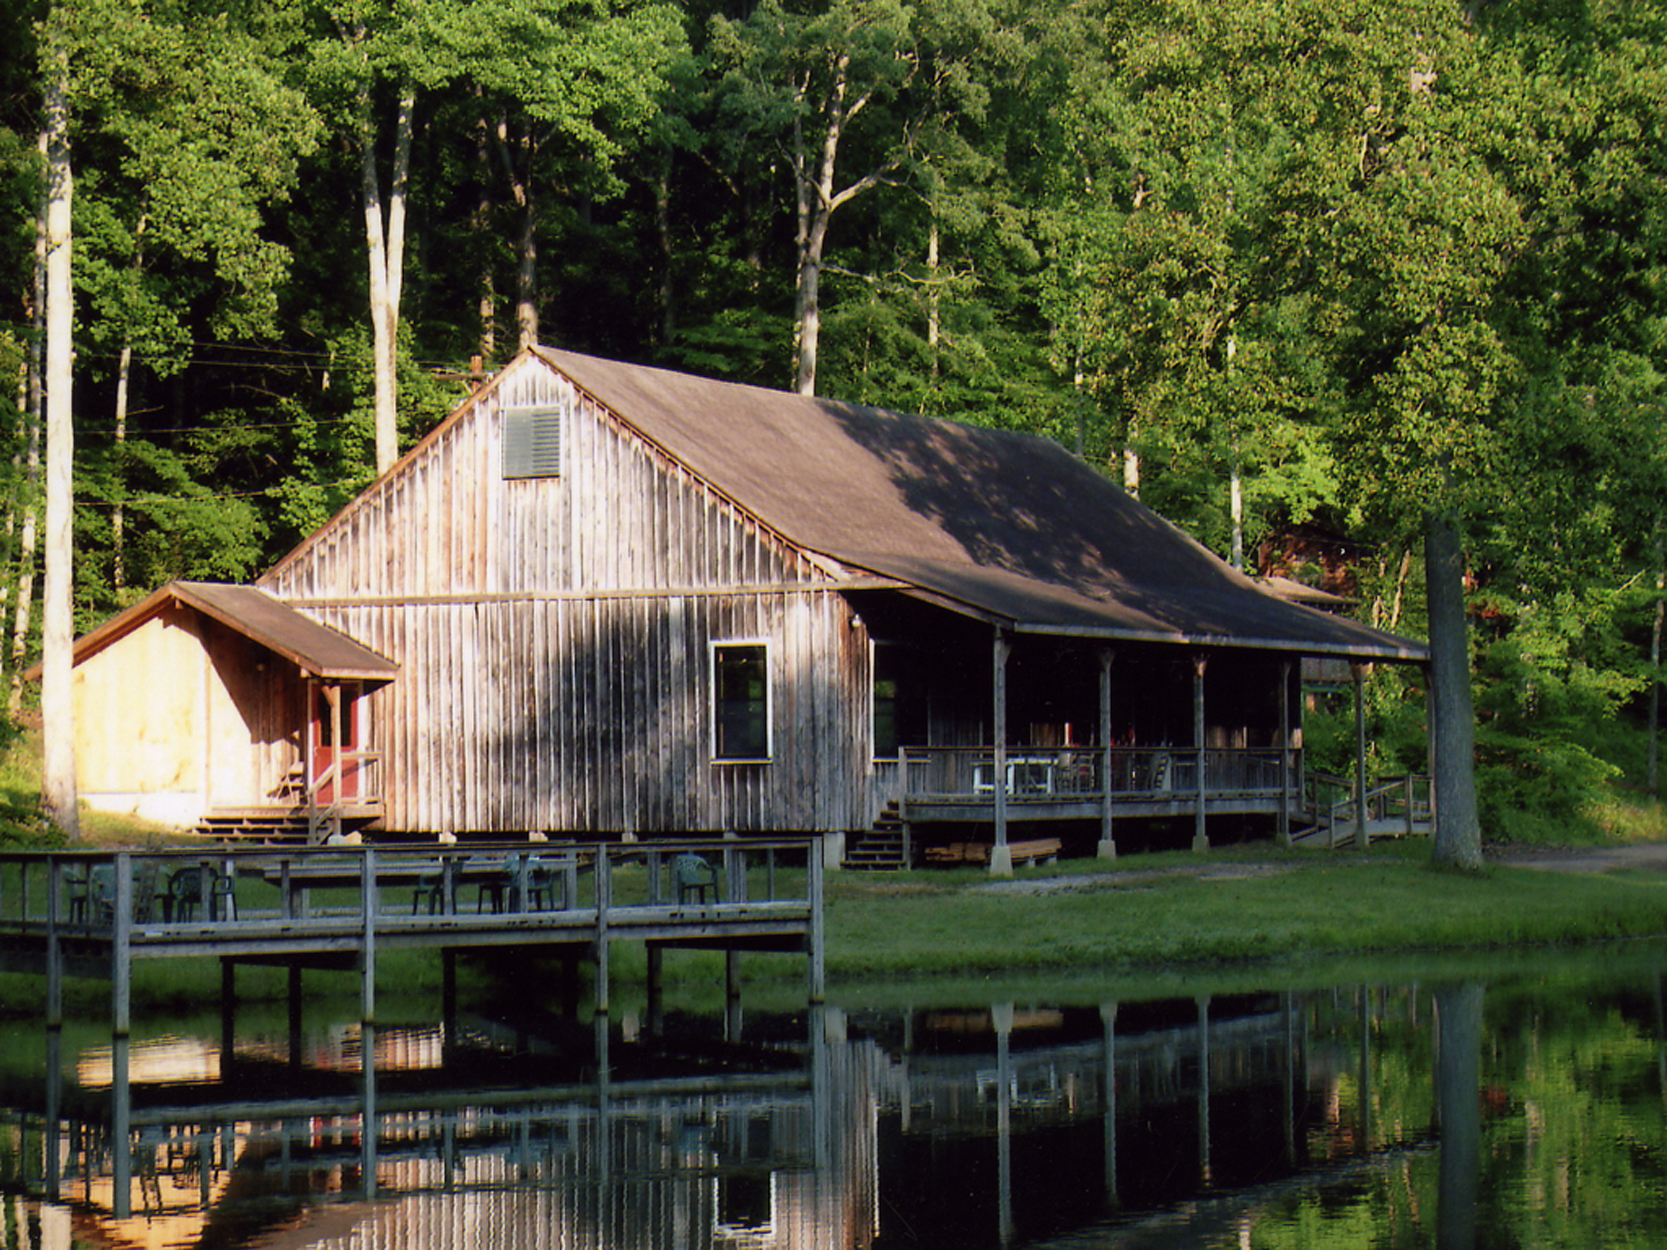 House by the lake, Bspo07, Building, Cabin, House, HQ Photo